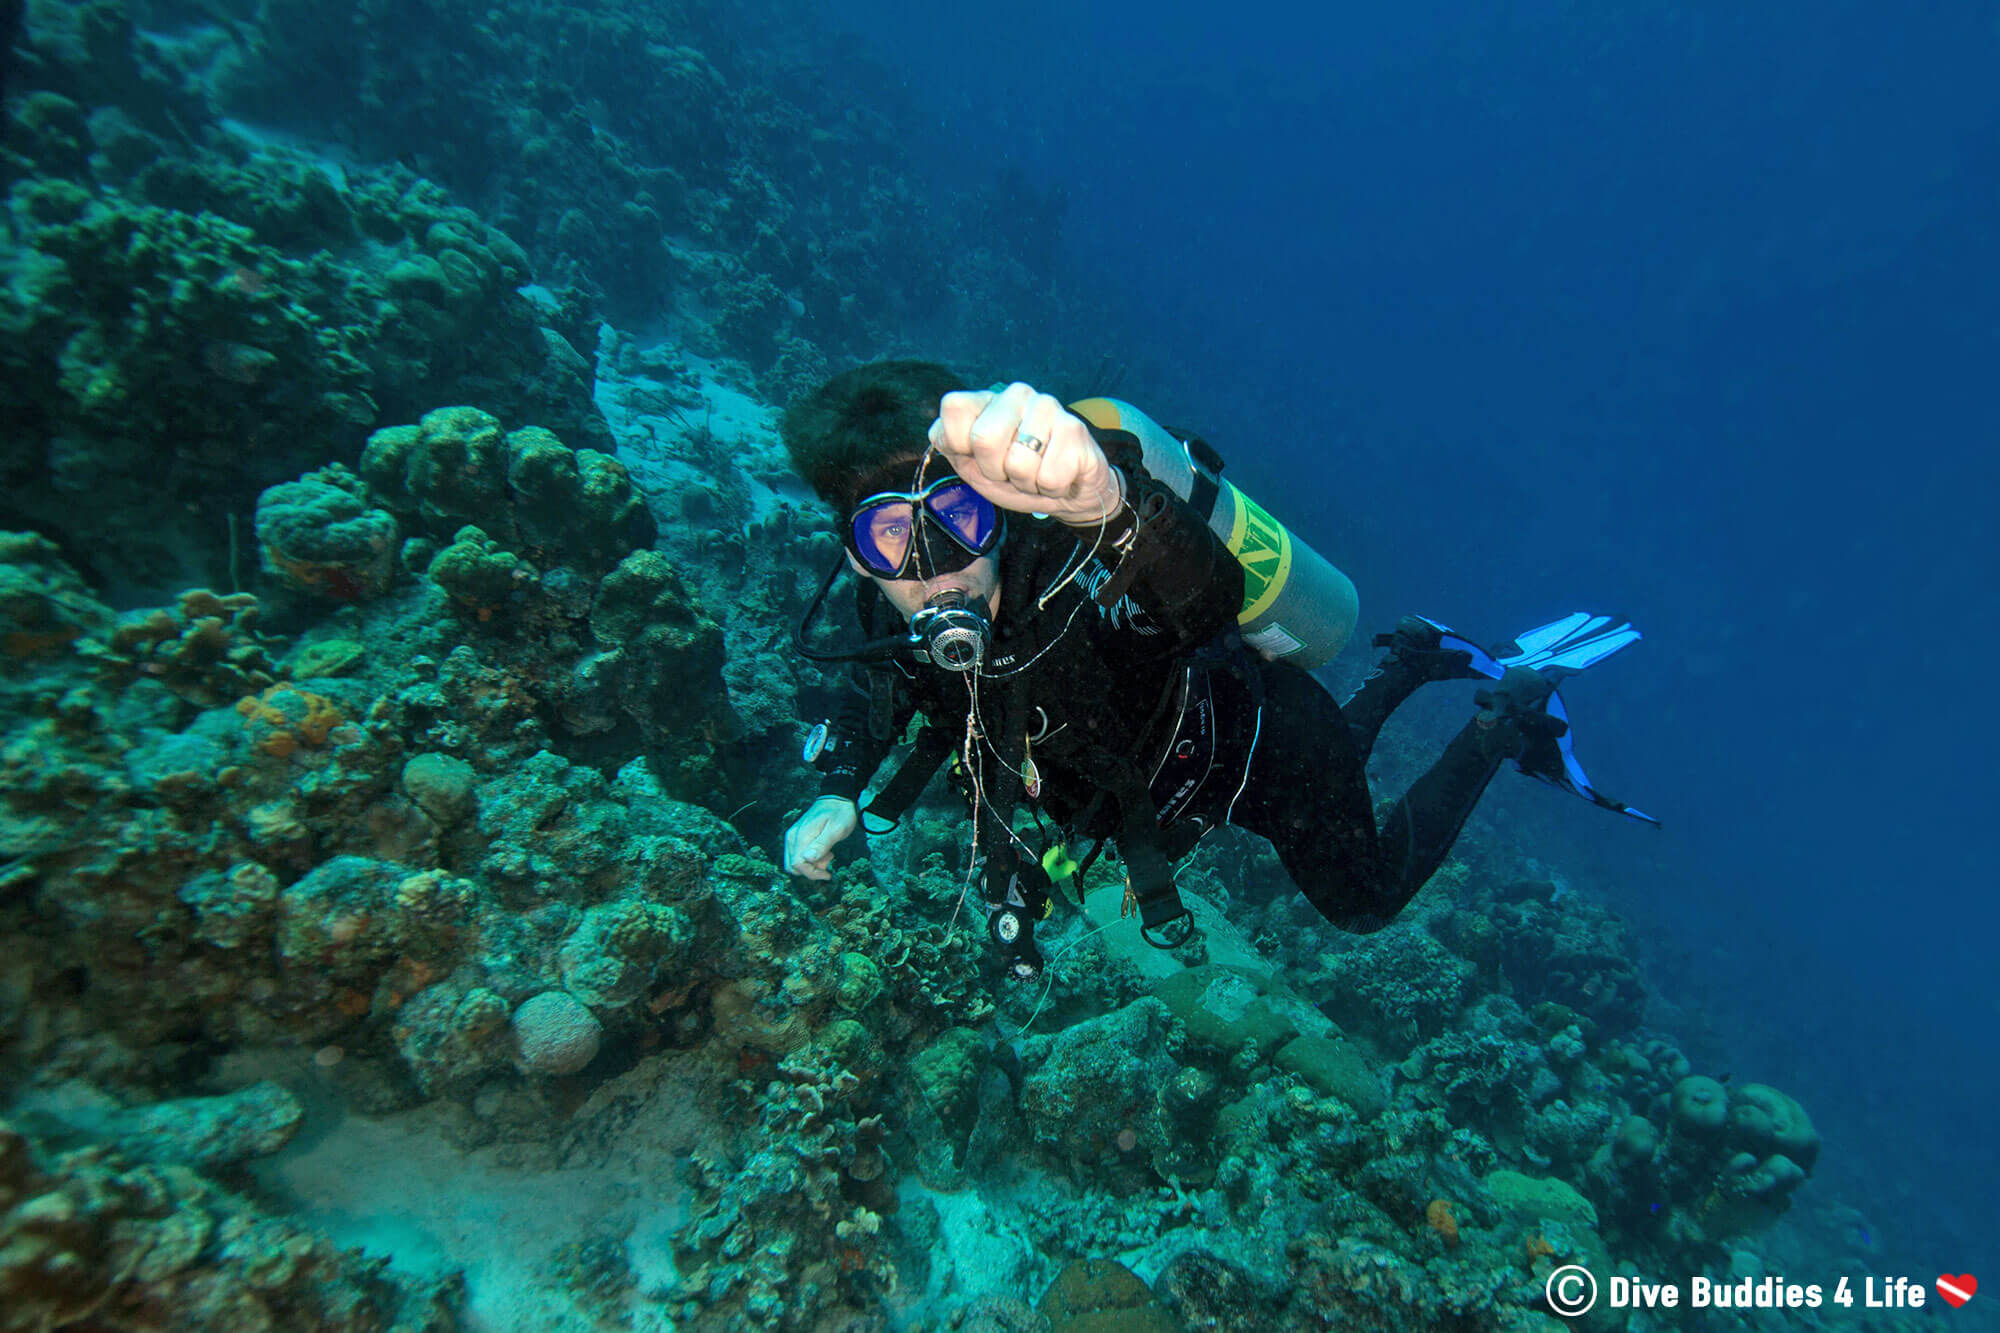 Joey Scuba Diving And Untangling Fishing Line From Some Corals On Bonaire During The Dive Clean Up With Dive Friends